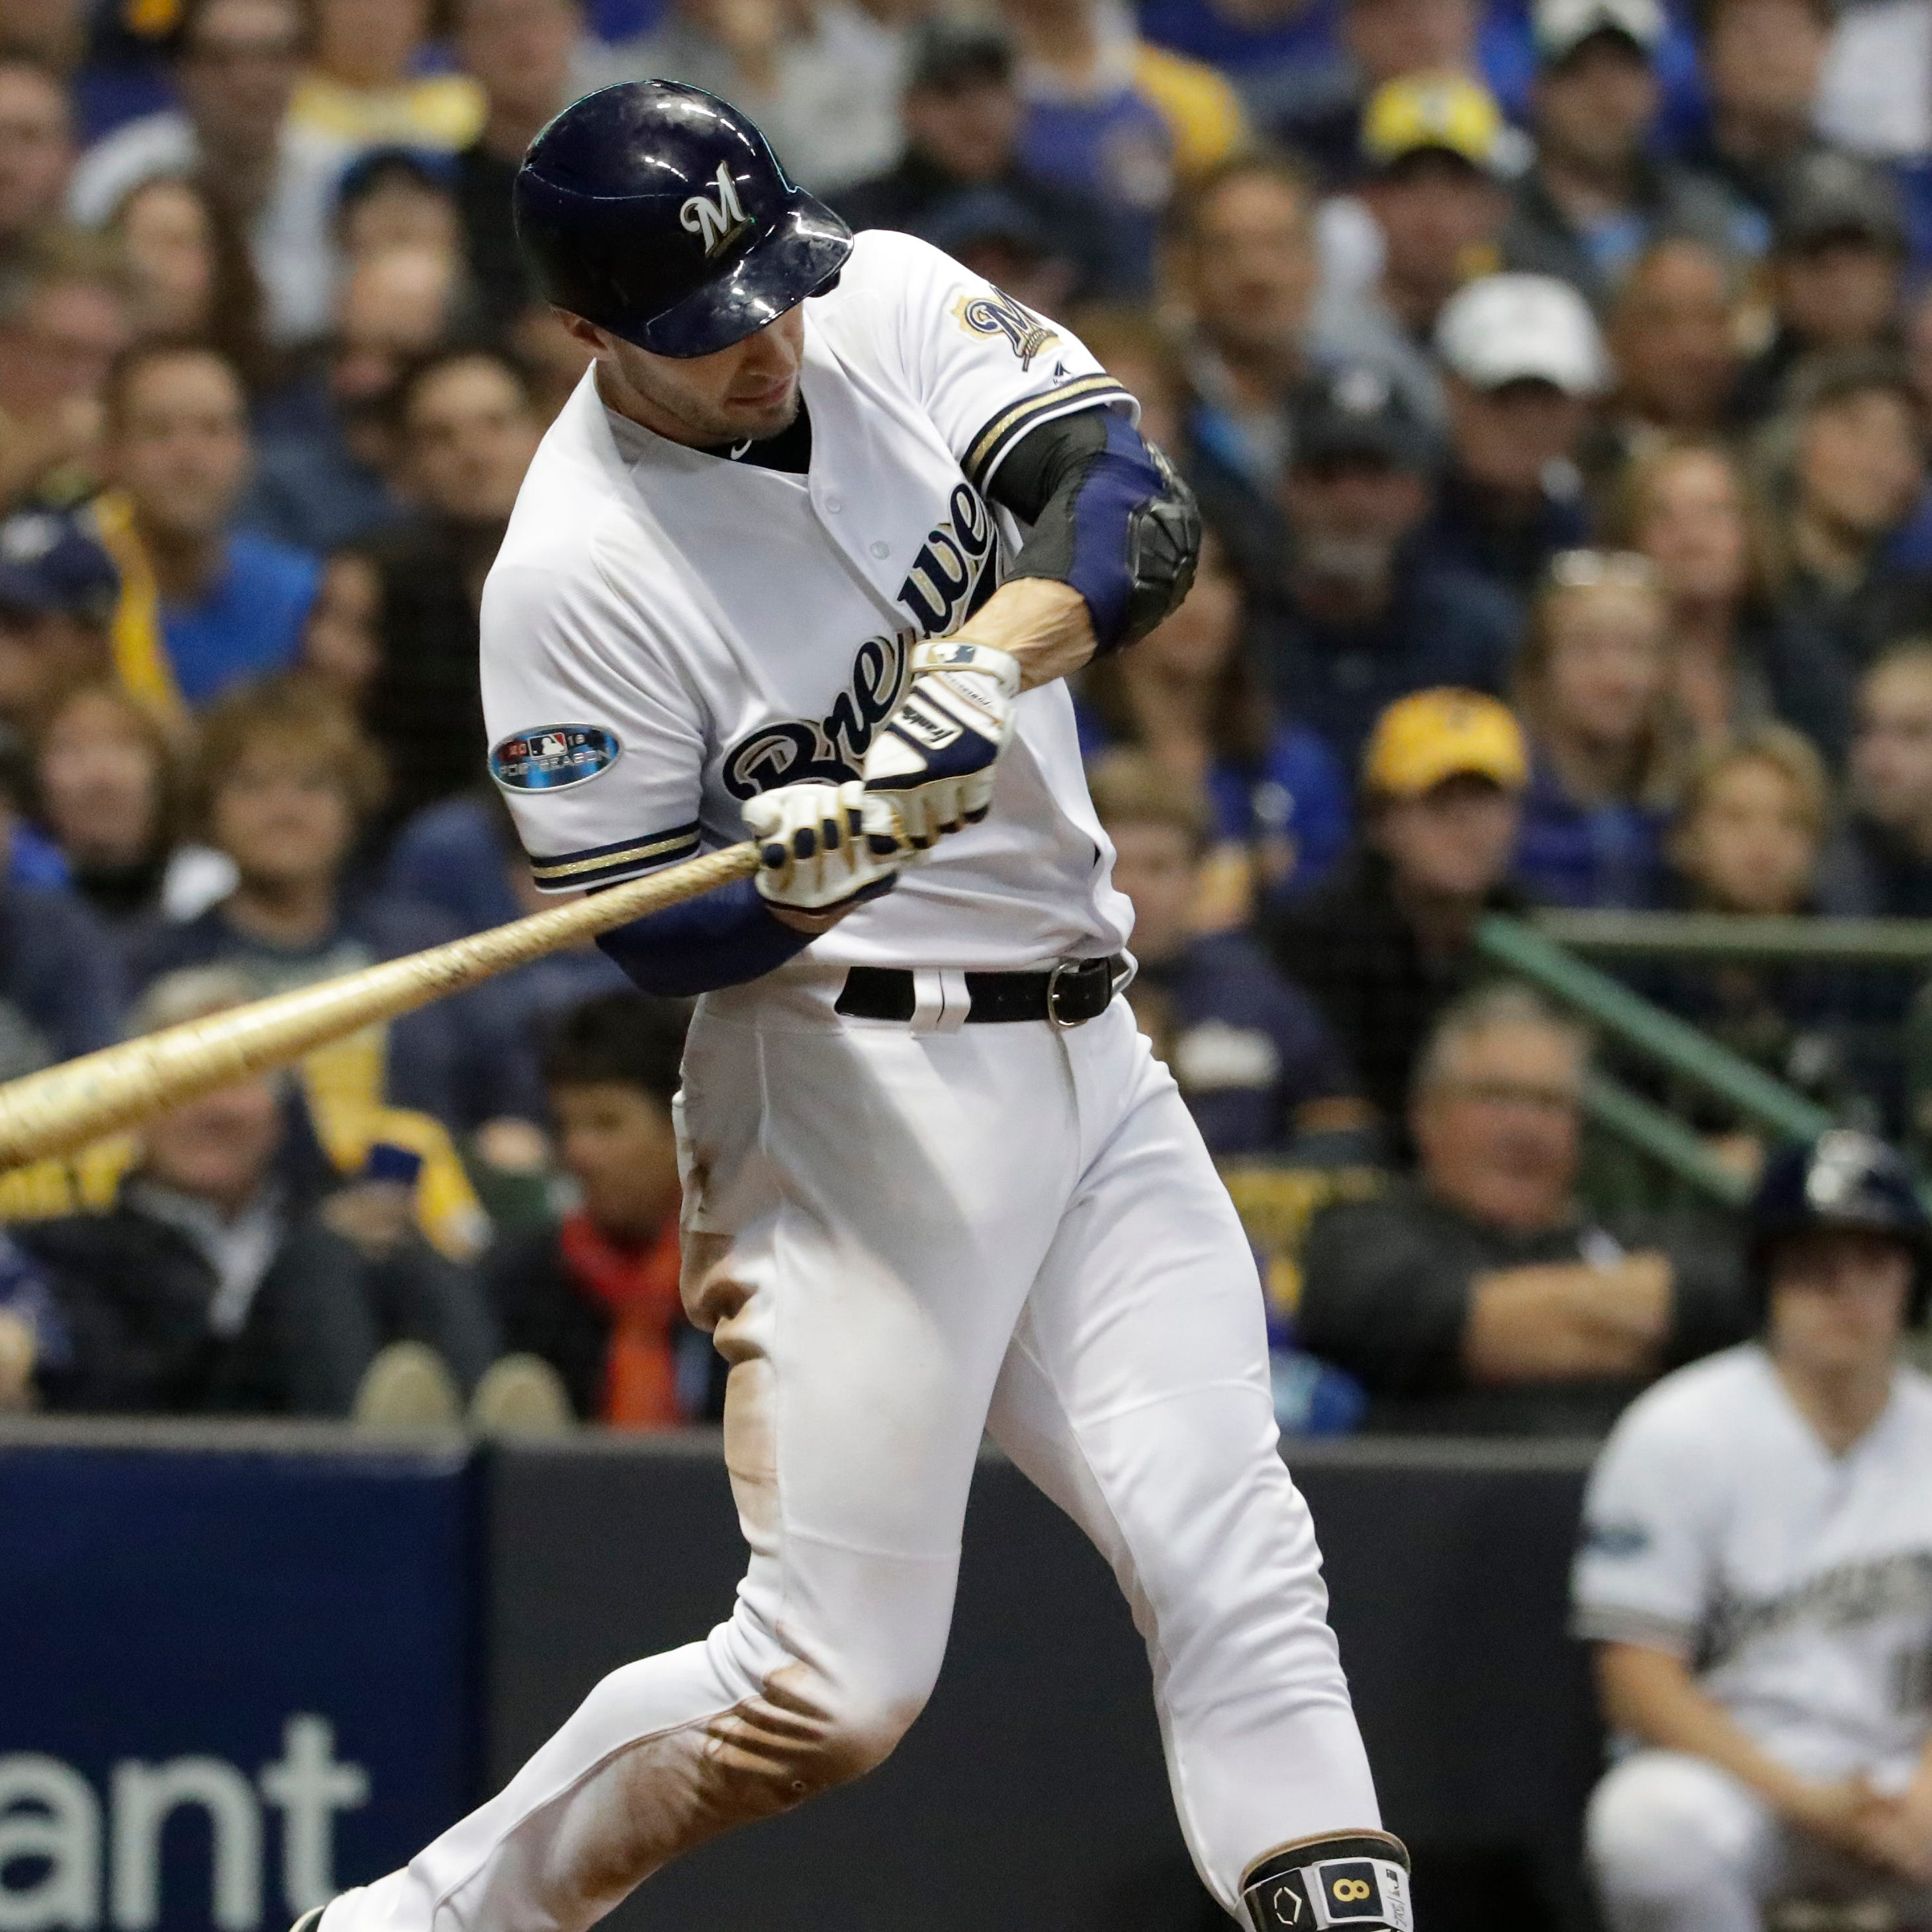 Left field: By tweaking bat path, Ryan Braun hopes to show you can teach an old dog new tricks